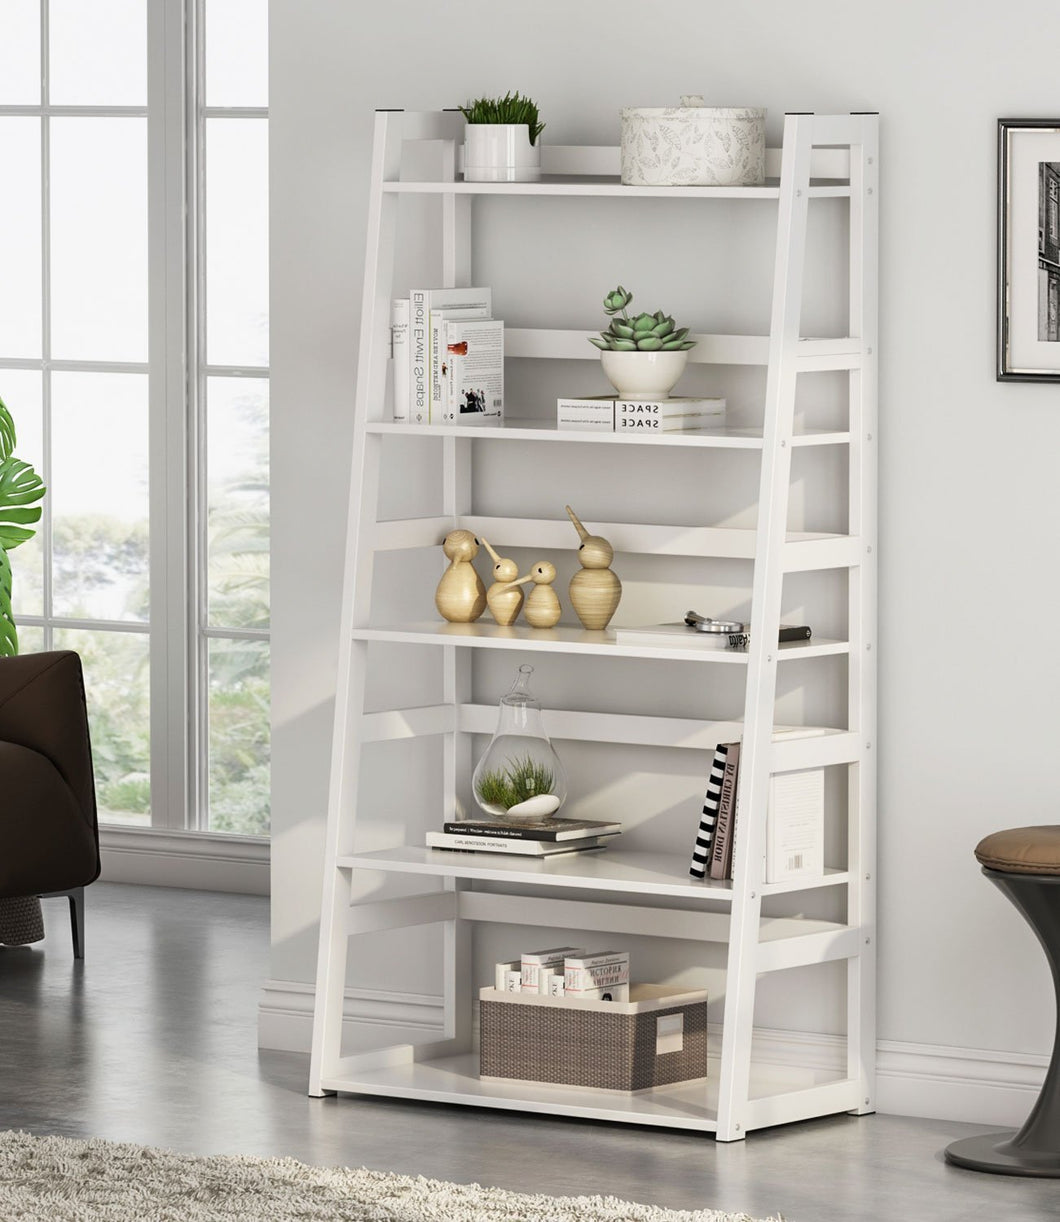 Select nice tribesigns 5 tier bookshelf modern bookcase freestanding leaning ladder shelf ample storage space for cd books home decor white